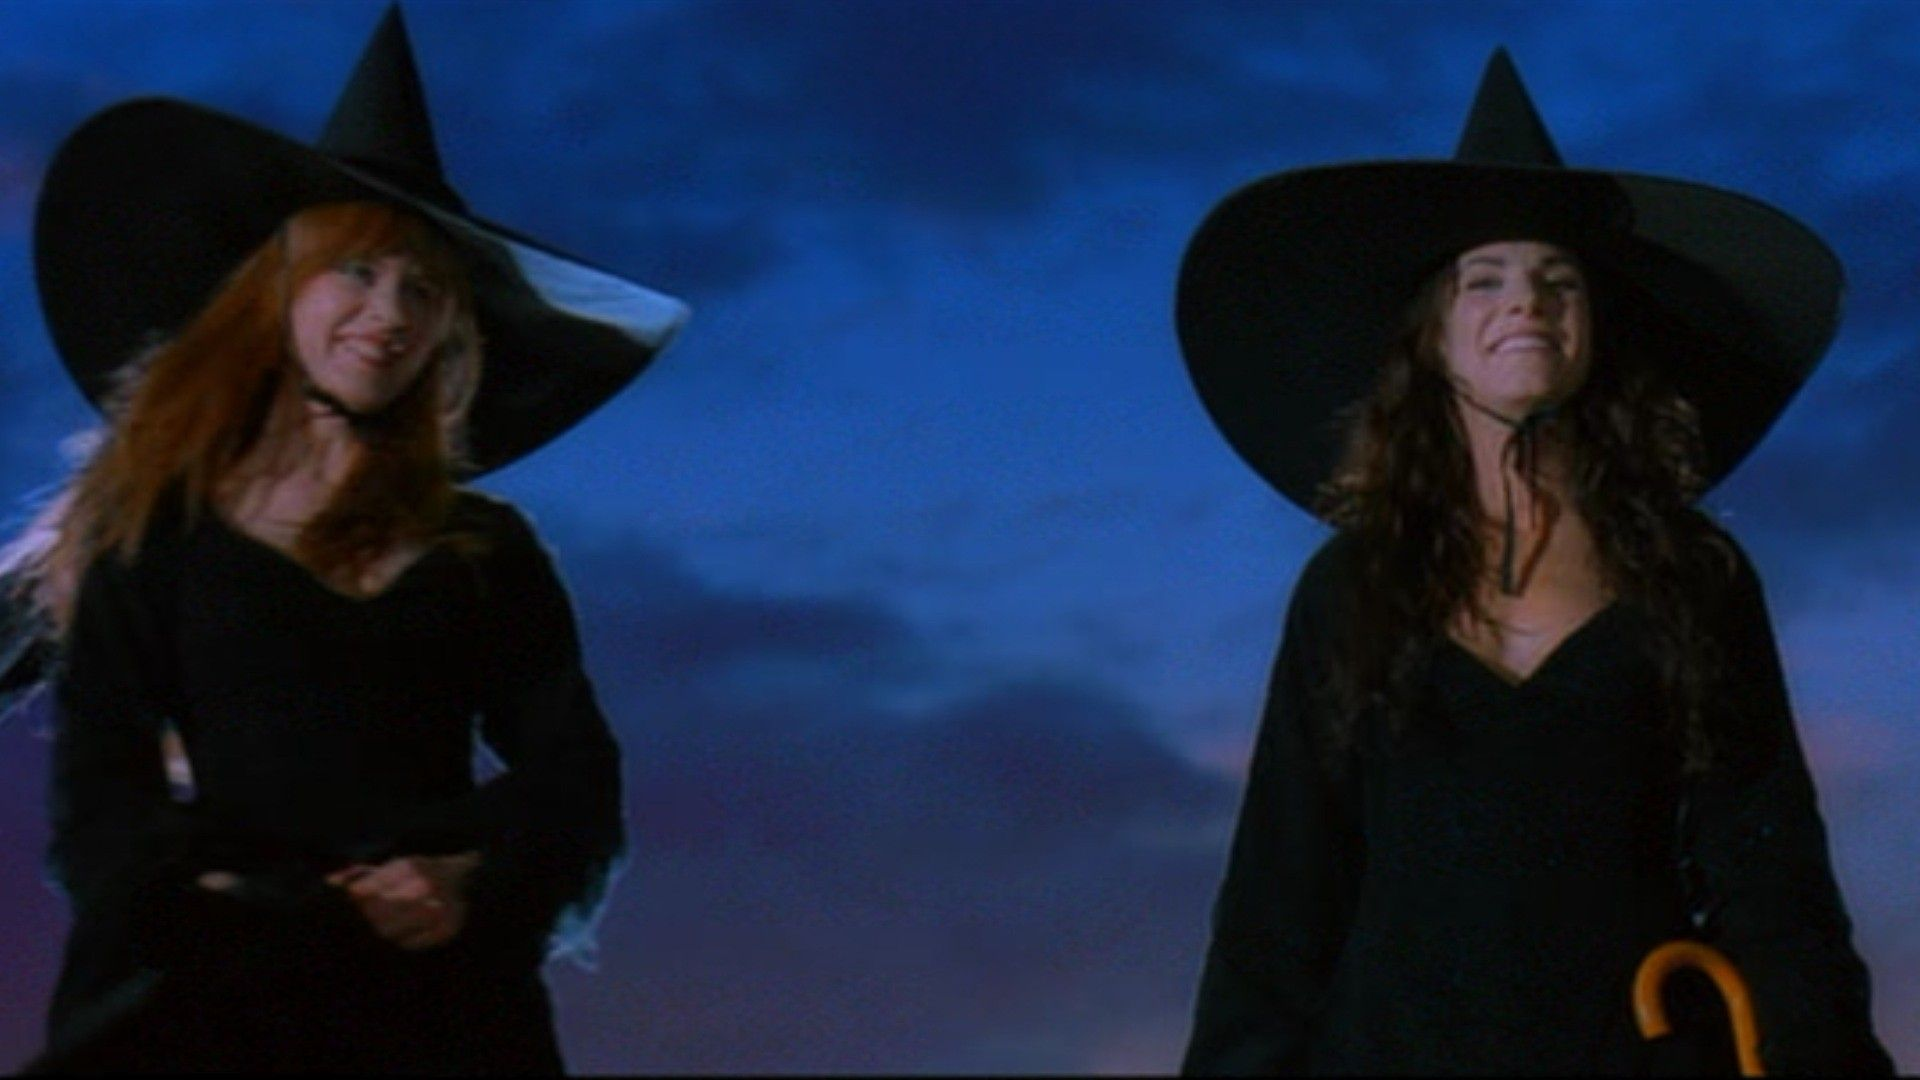 gimme five movie witches halloween moviesfall - Halloween Movies About Witches